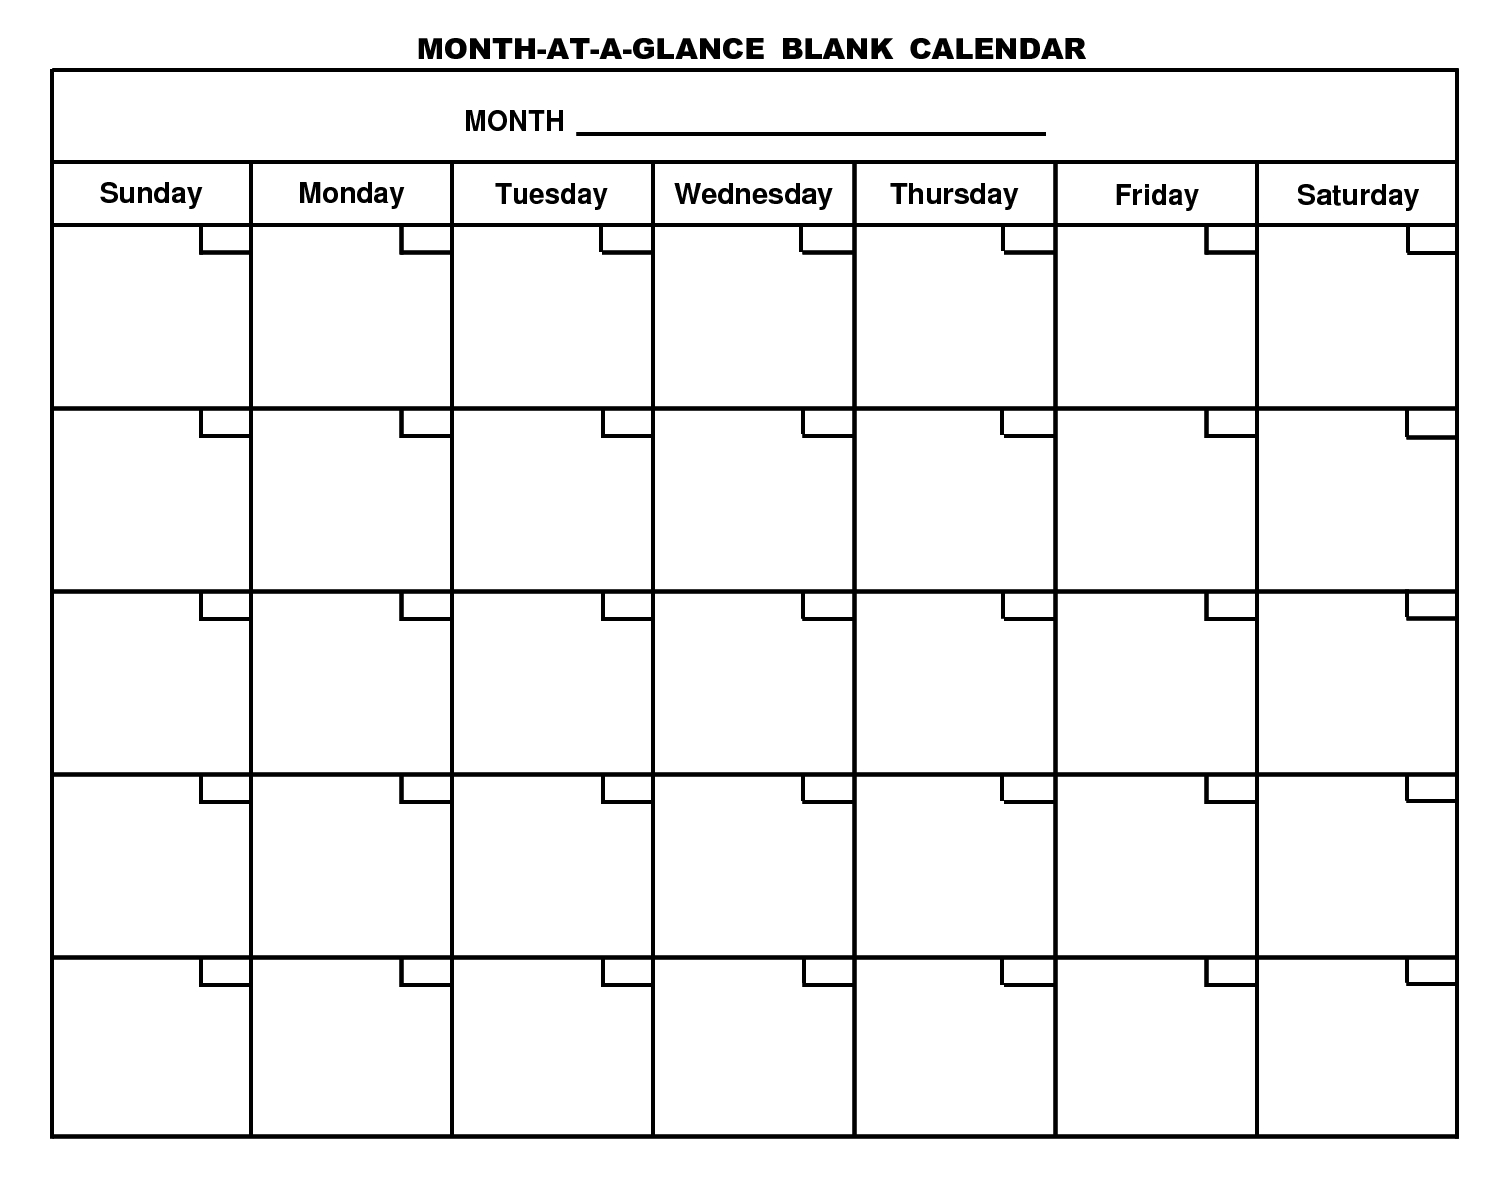 Blank-Calendar-Page | Blank Calendar Pages, Printable Blank throughout Free Monthly Calendar Printable And Editable